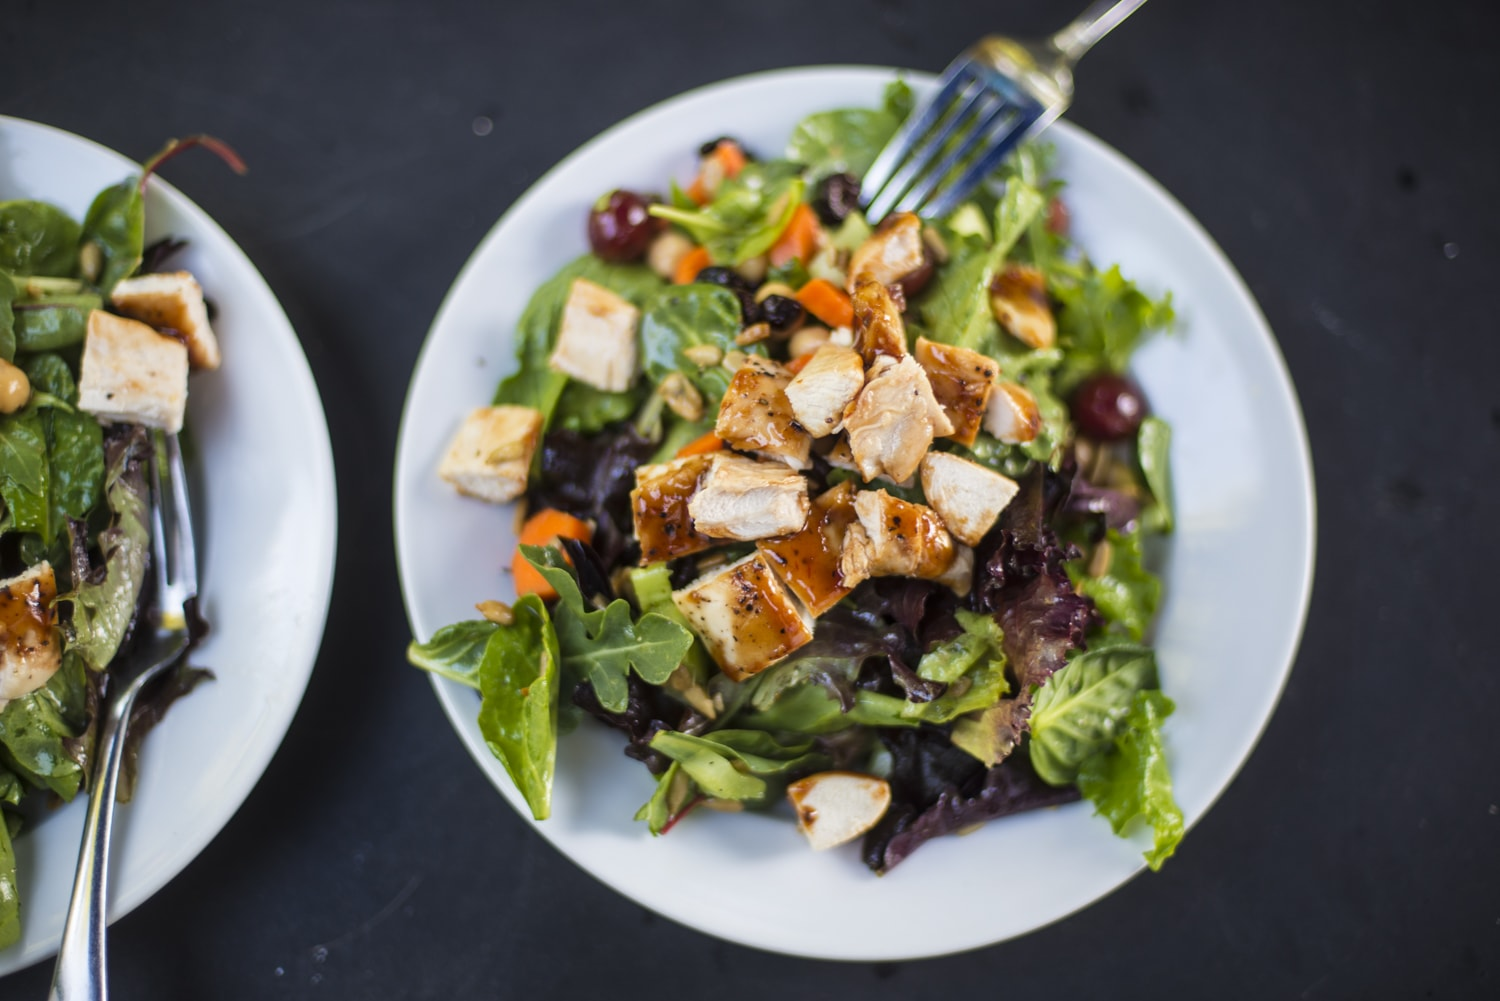 Crunchy Green Salad with BBQ Chicken and Agave Nectar